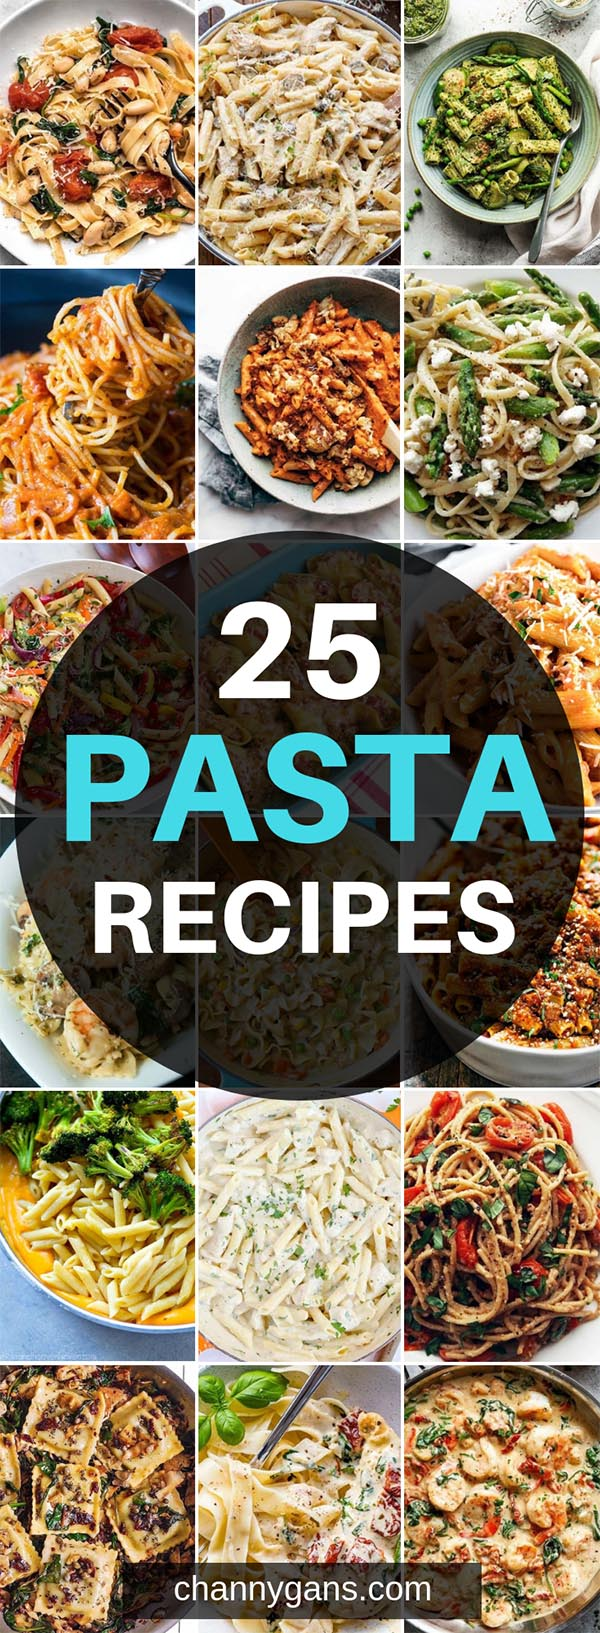 You can never go wrong with any of these pasta recipes! These pasta recipes are perfect if you are looking for a filling meal.